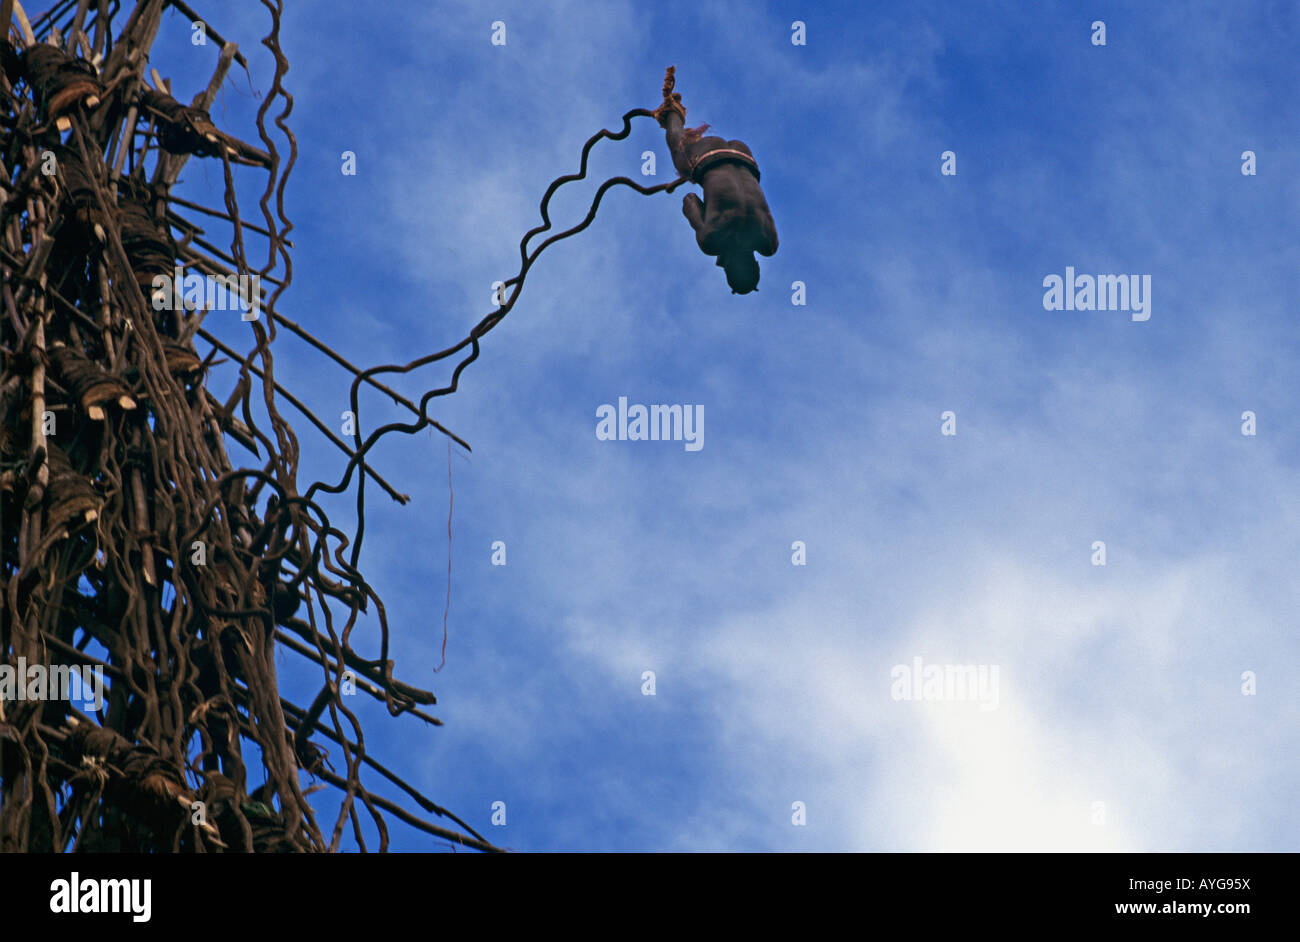 Land diver jumps from wooden tower tied only by vines to his ankles at Pangi on Pentecost Island in the Vanuatu - Stock Image